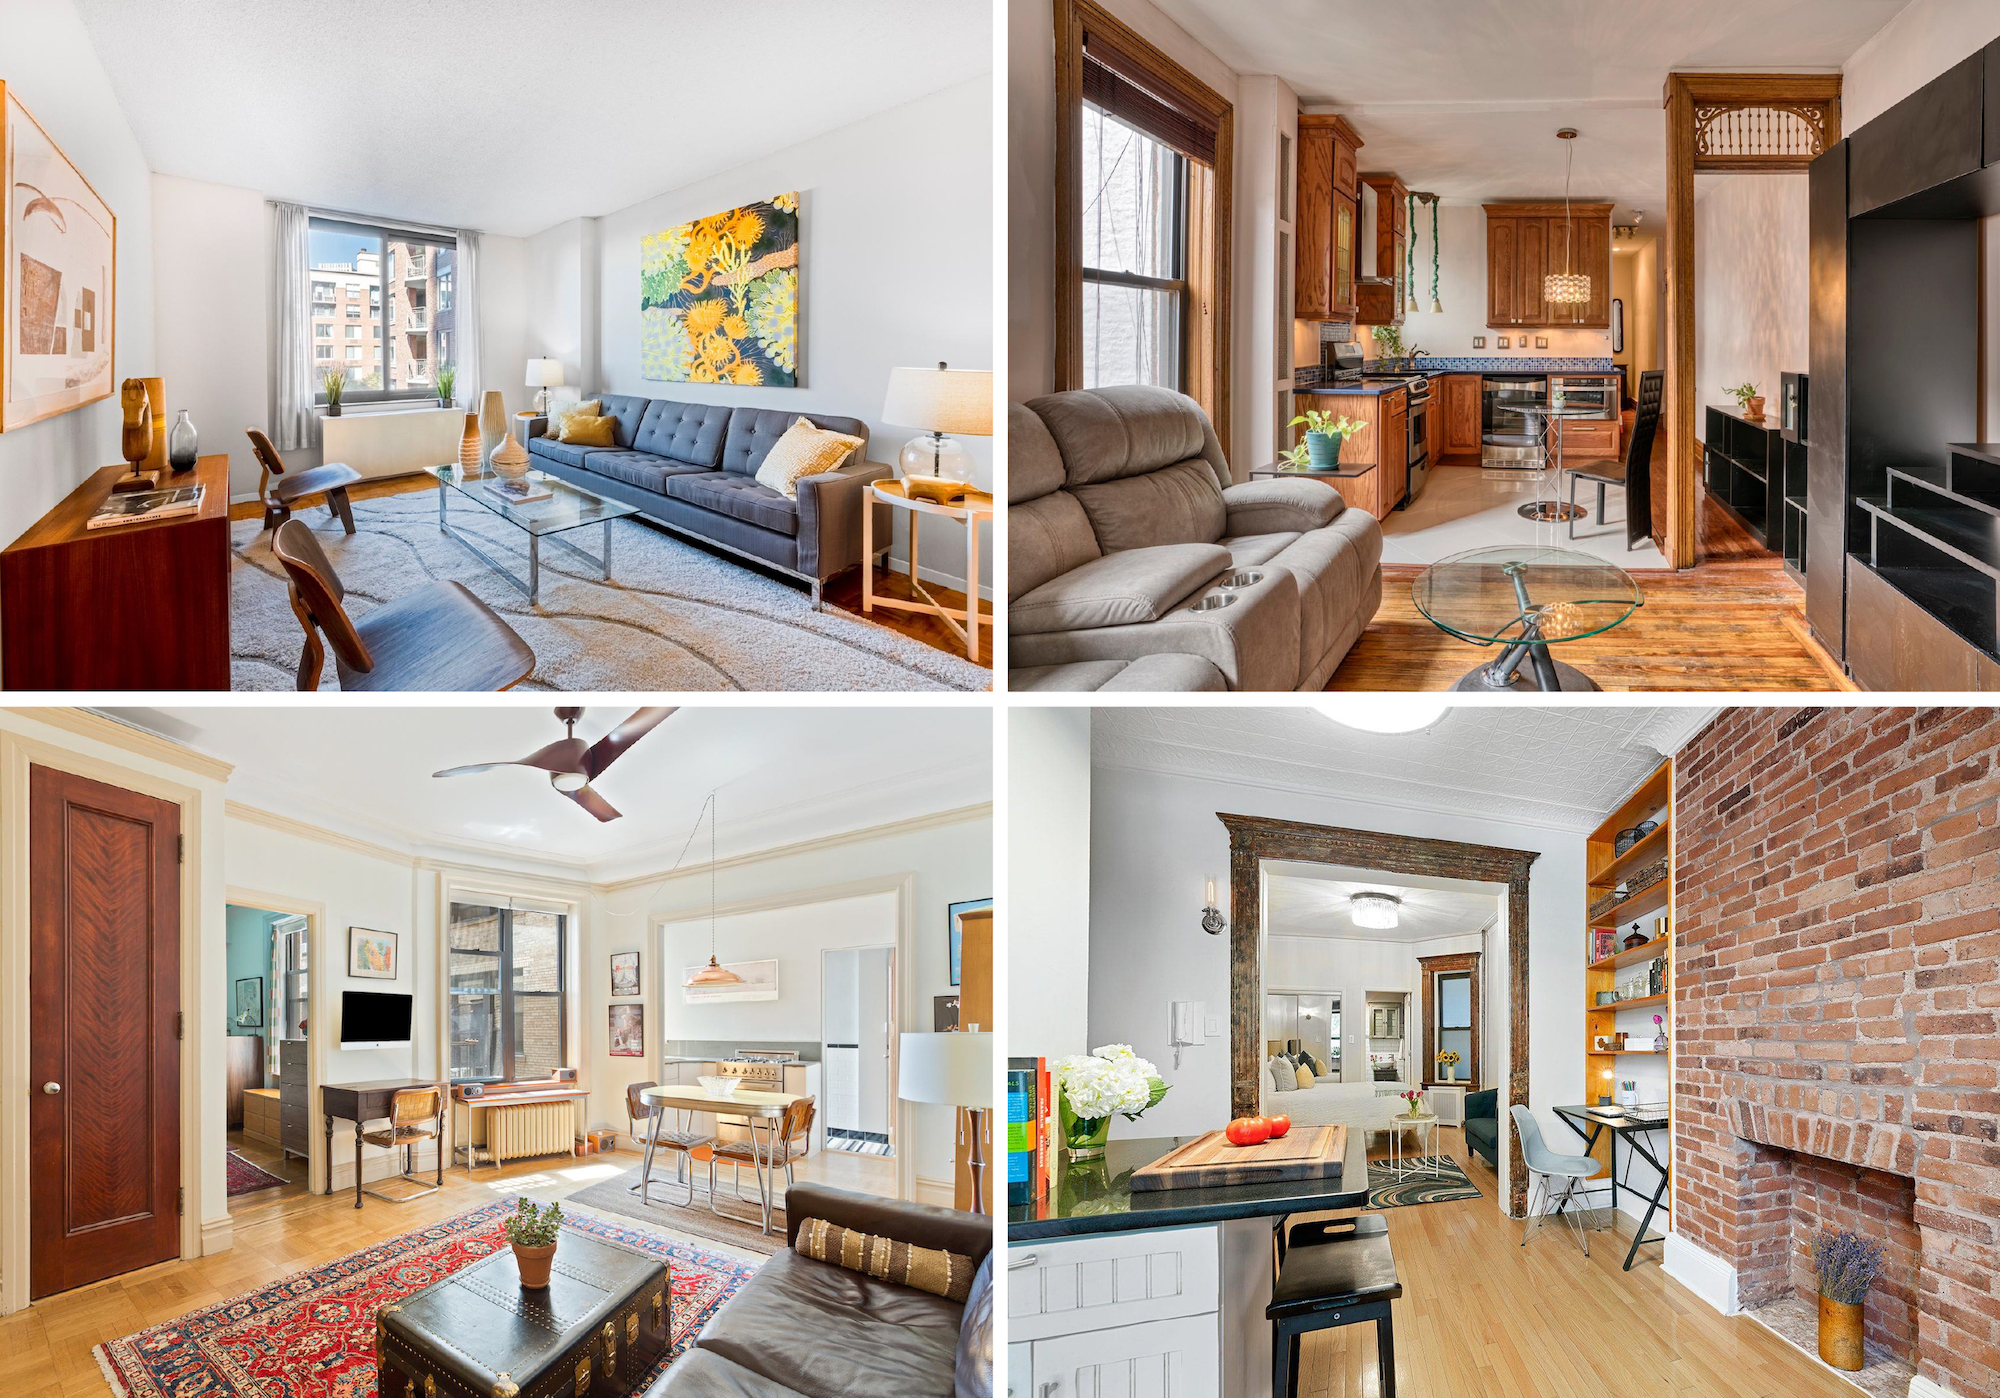 The Best Nyc Apartments For Sale Under 500k 6sqft